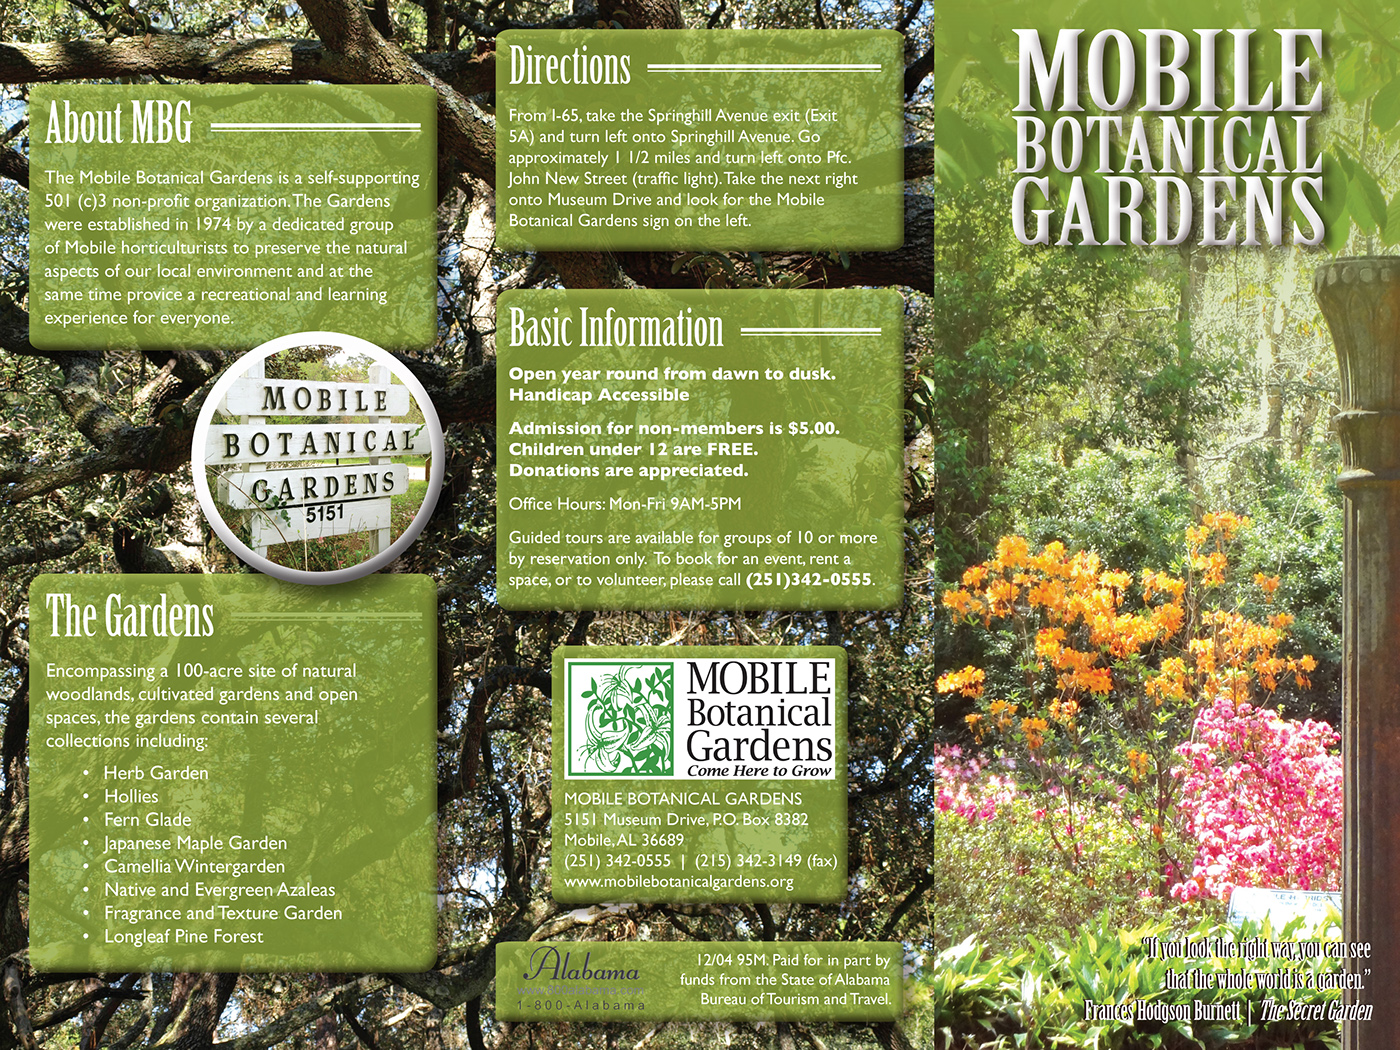 Mobile Botanical Gardens Brochure on Behance. Mobile Alabama Botanical Gardens. Home Design Ideas